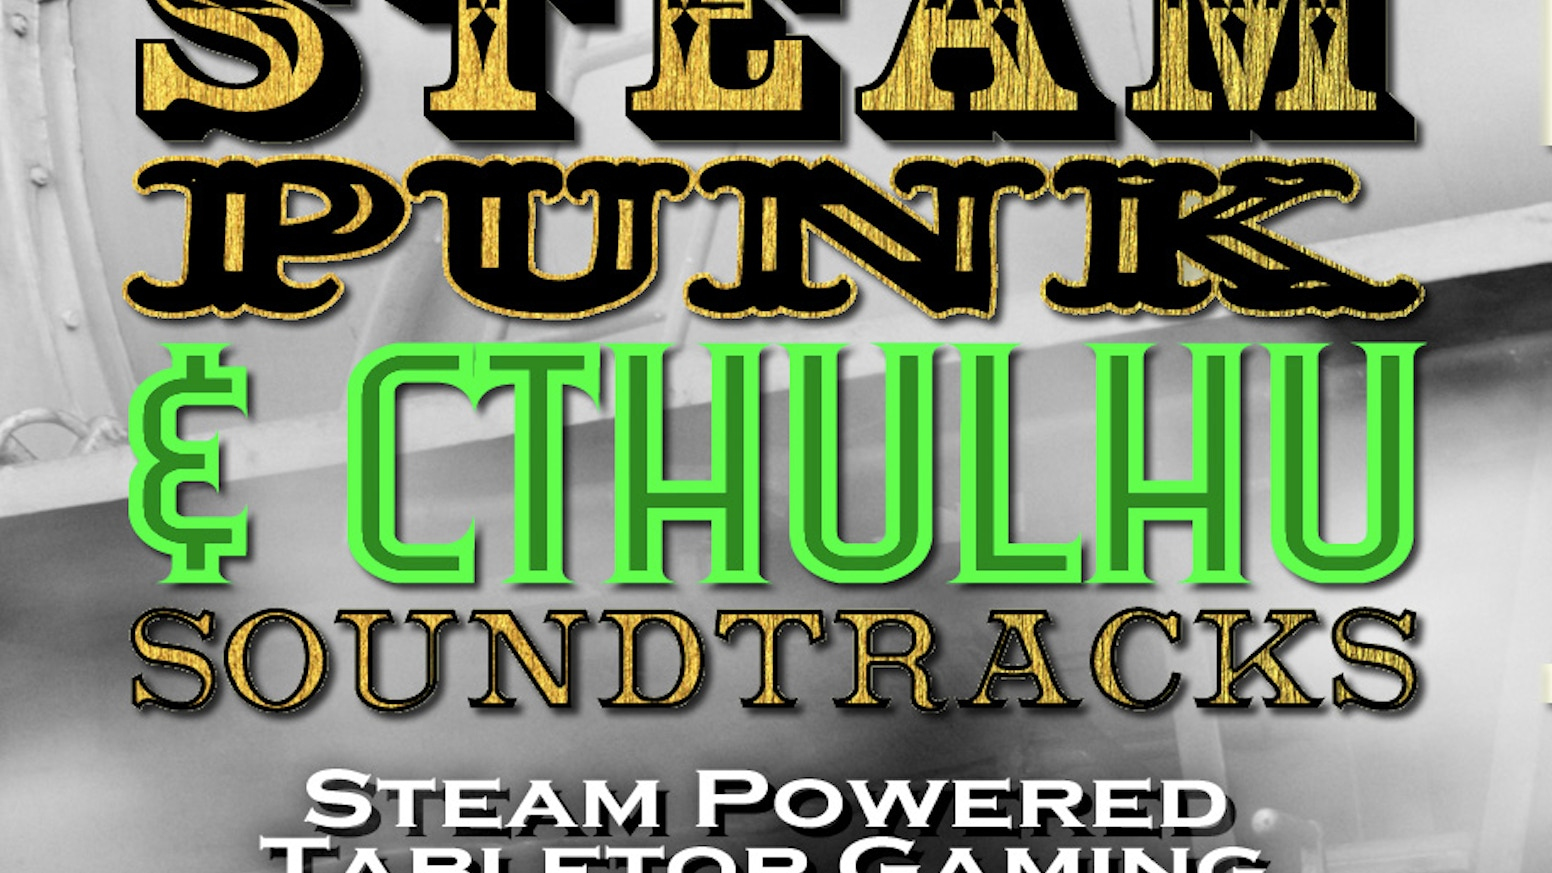 Steampunk & Cthulhu Soundtracks: Tabletop Gaming Soundscapes by